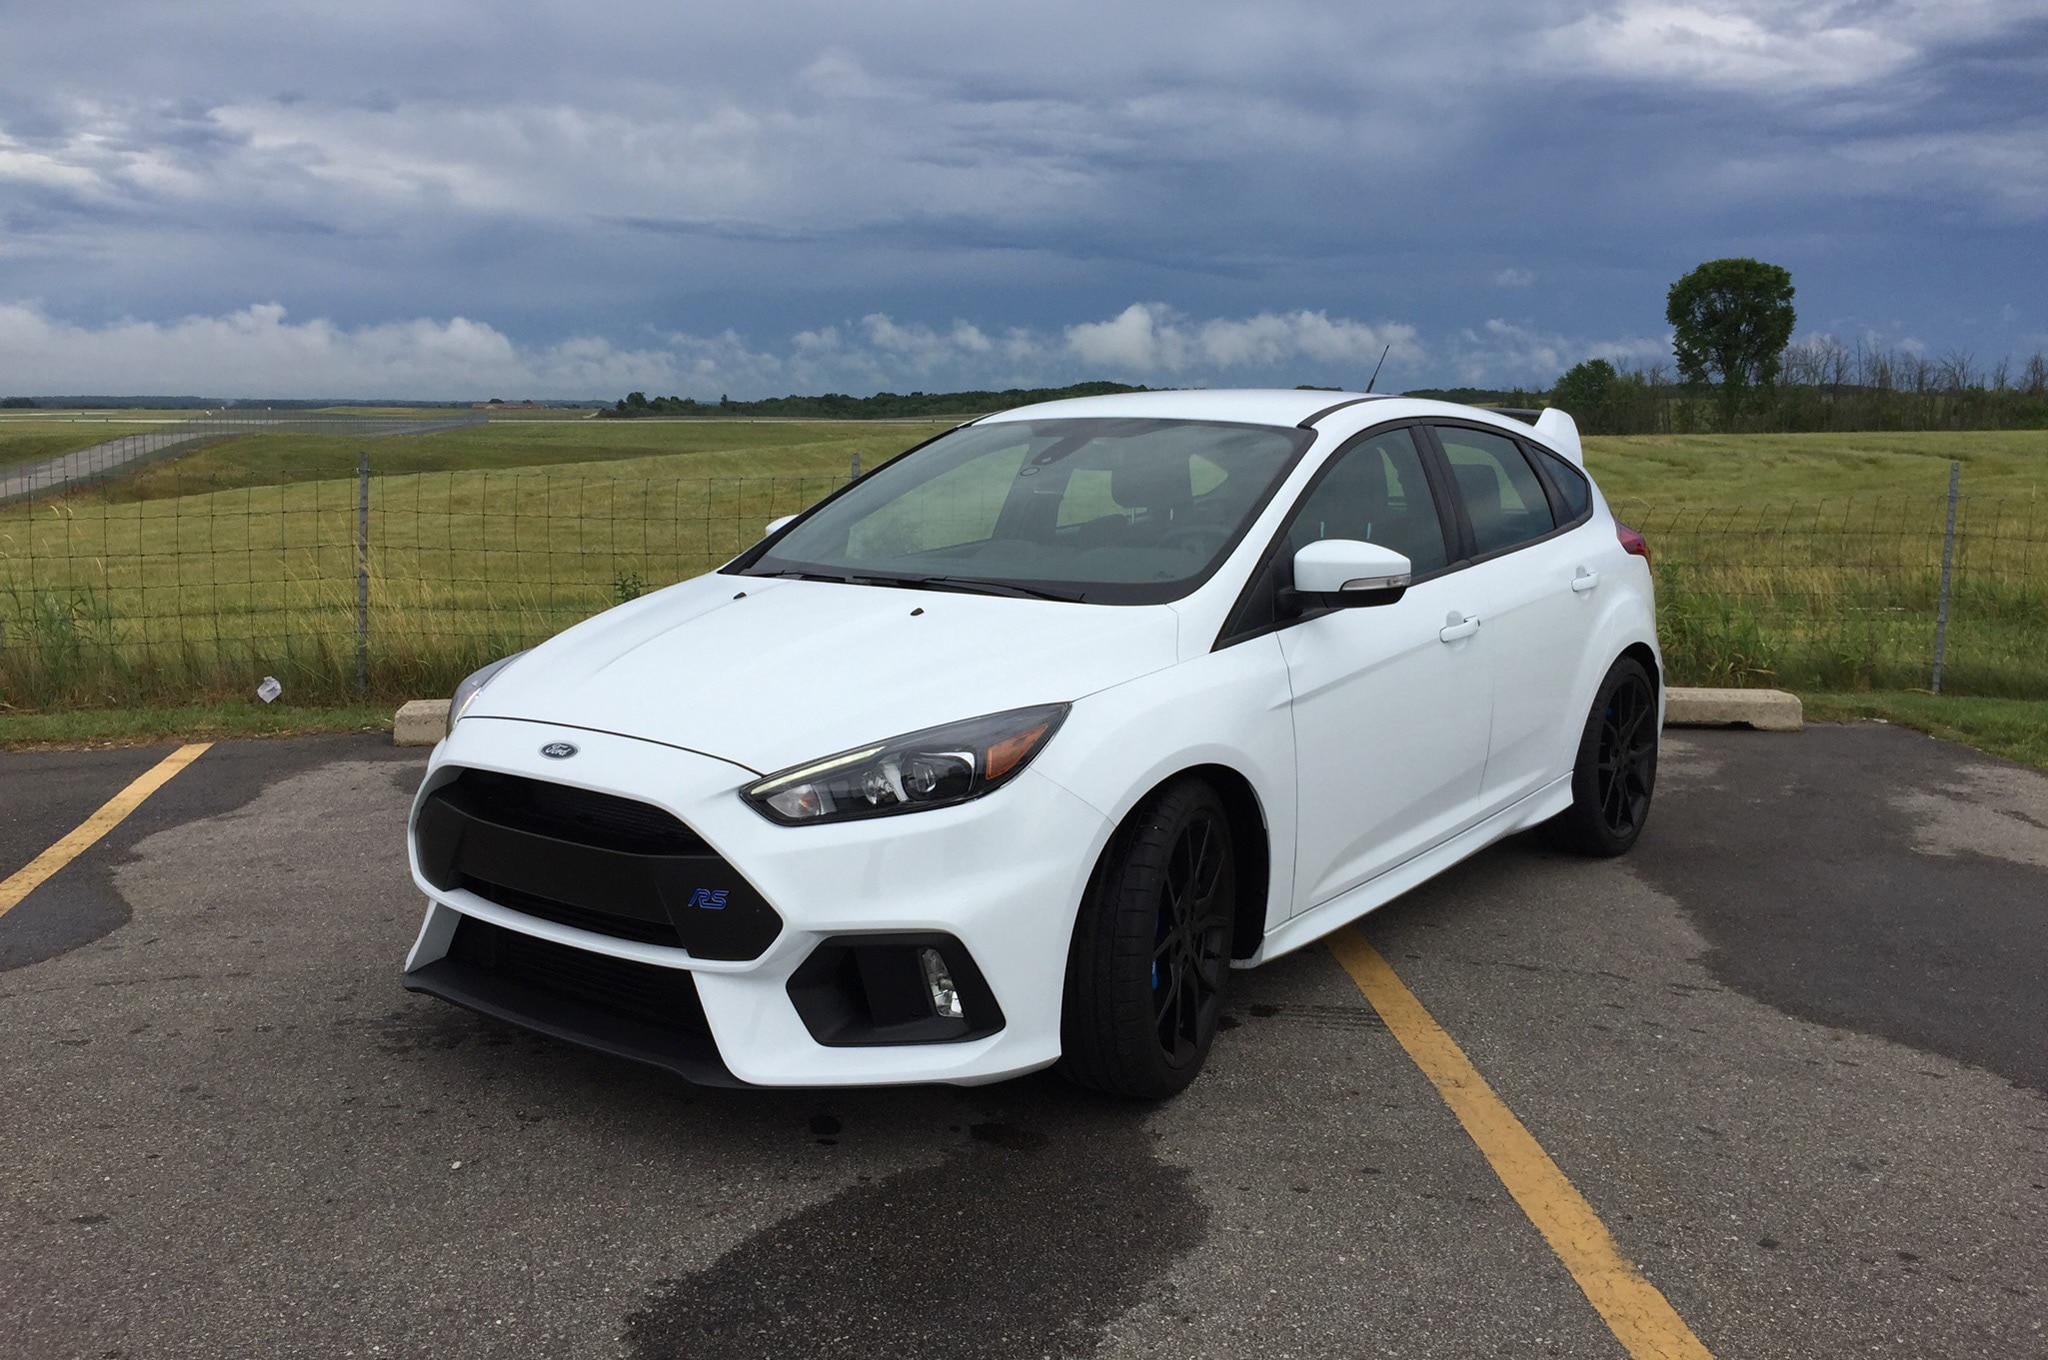 Focus St 0 60 >> 2016 Ford Focus RS: The Ownership Experience, Part 2 | Automobile Magazine